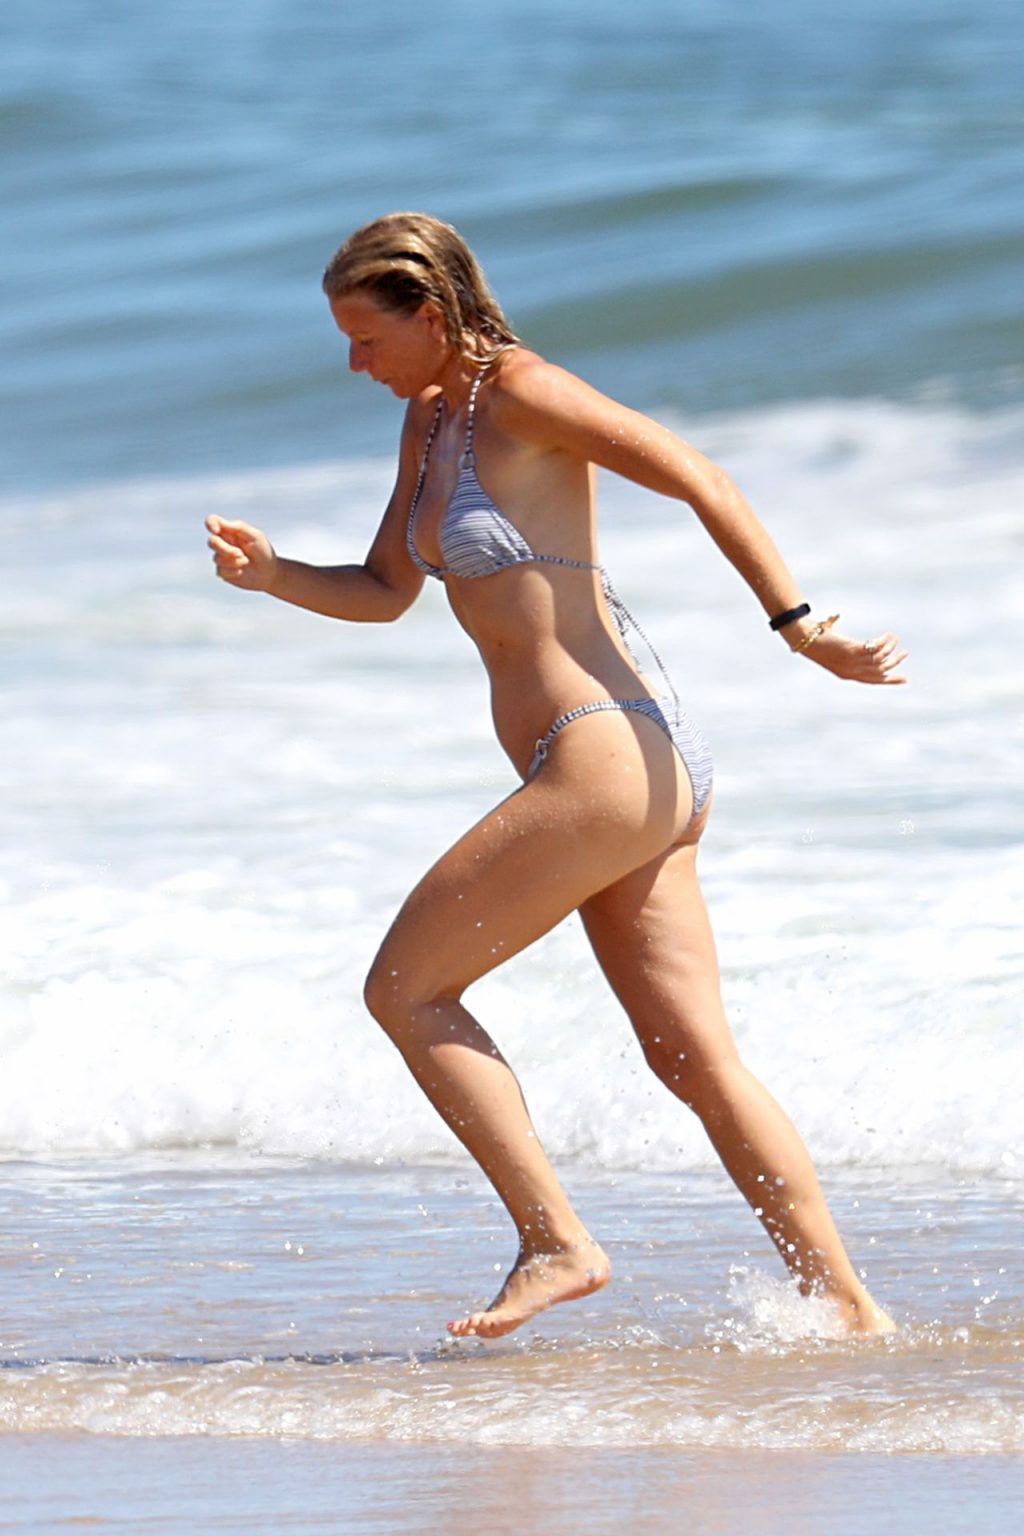 Gwyneth Paltrow Shows Off Her Toned Beach Body on the Beach in The Hamptons (95 Photos)